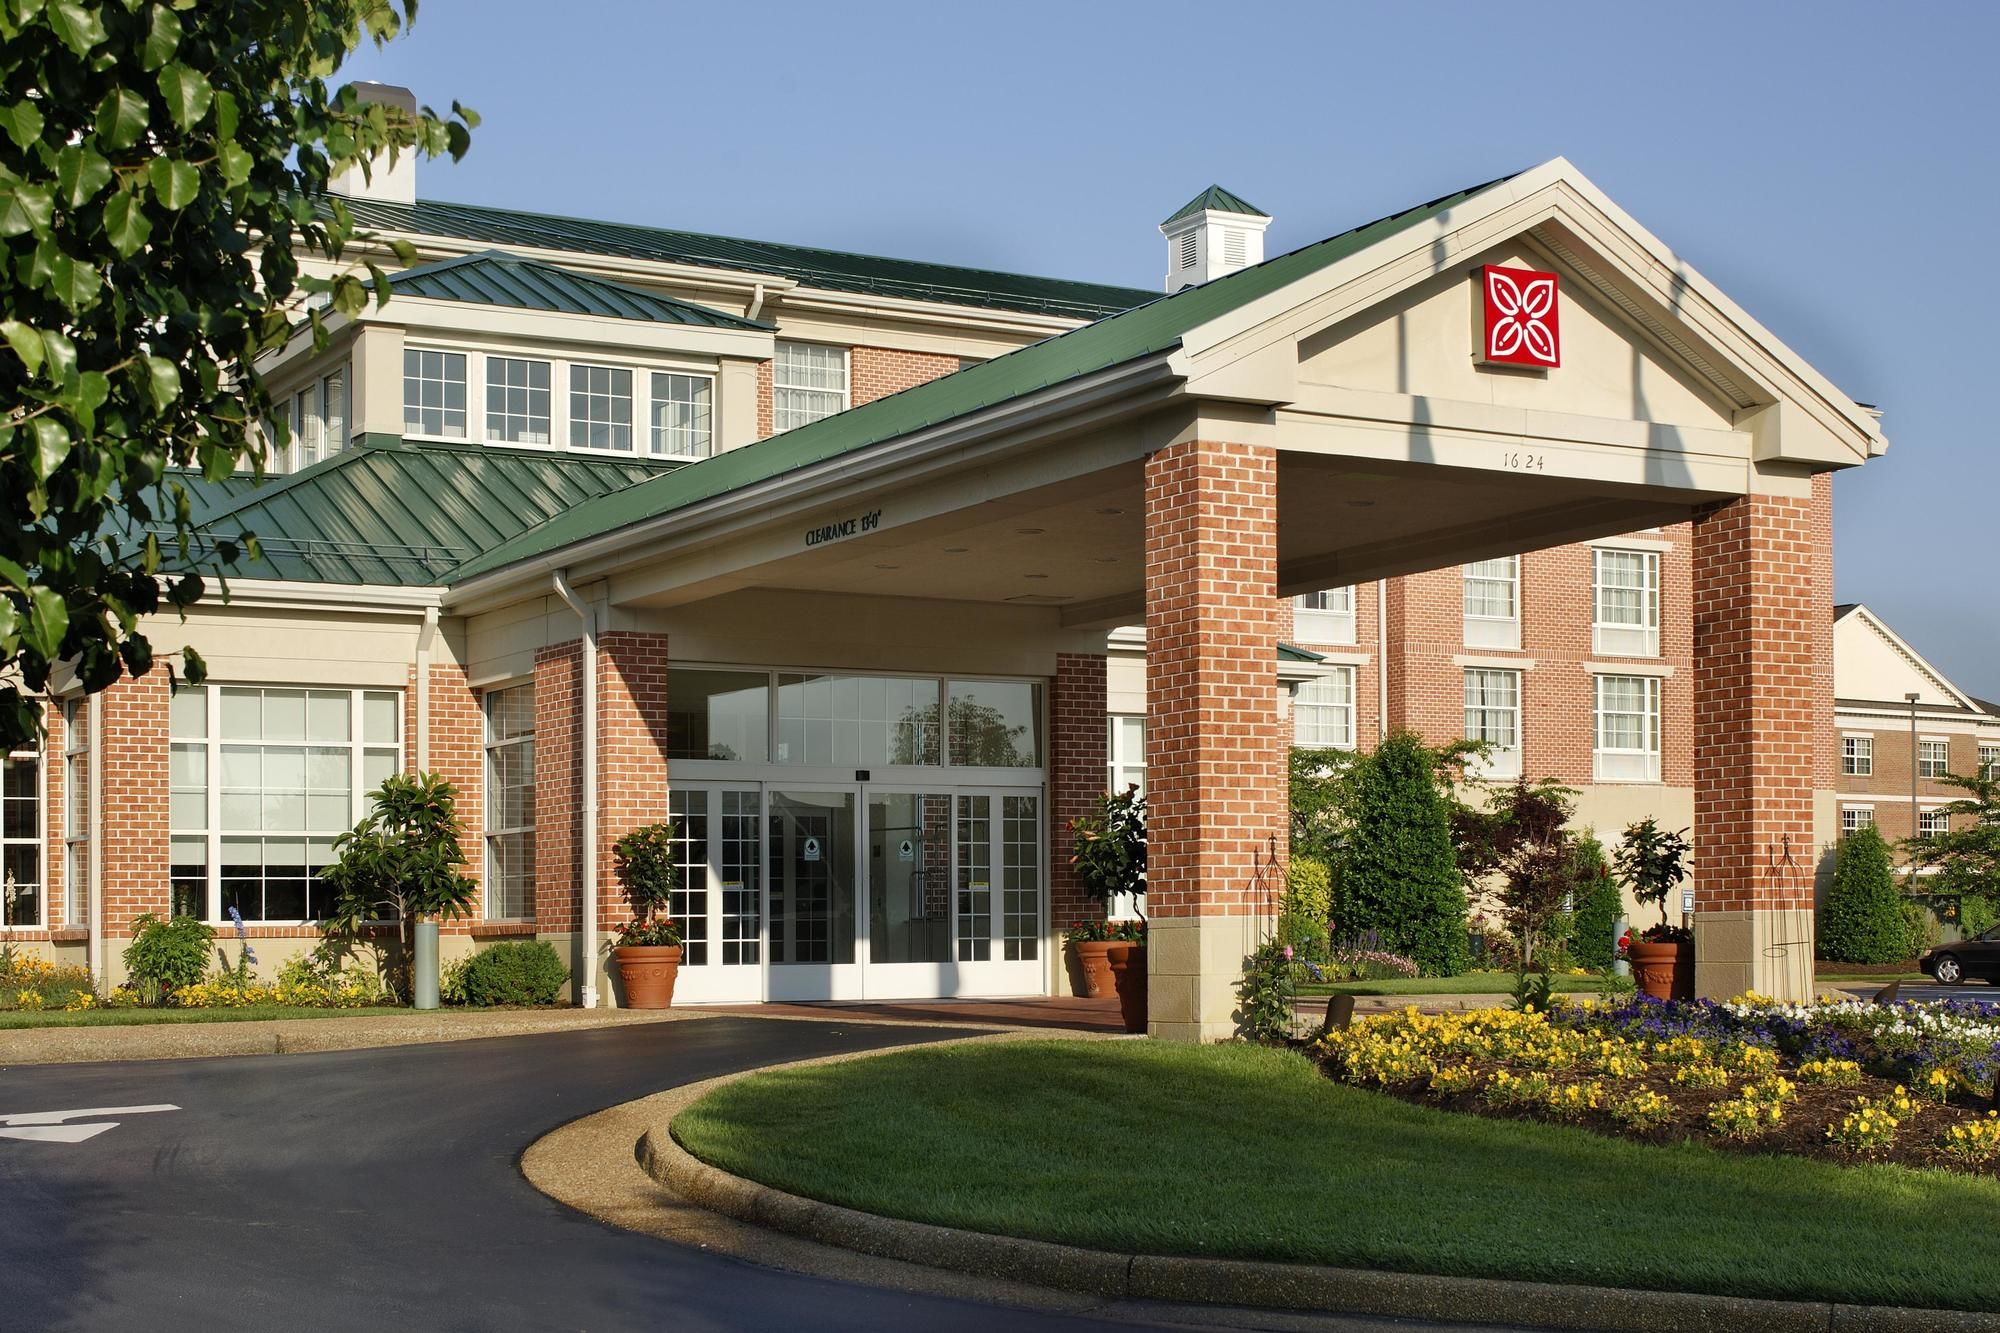 DoubleTree by Hilton Williamsburg - Hotel Reviews